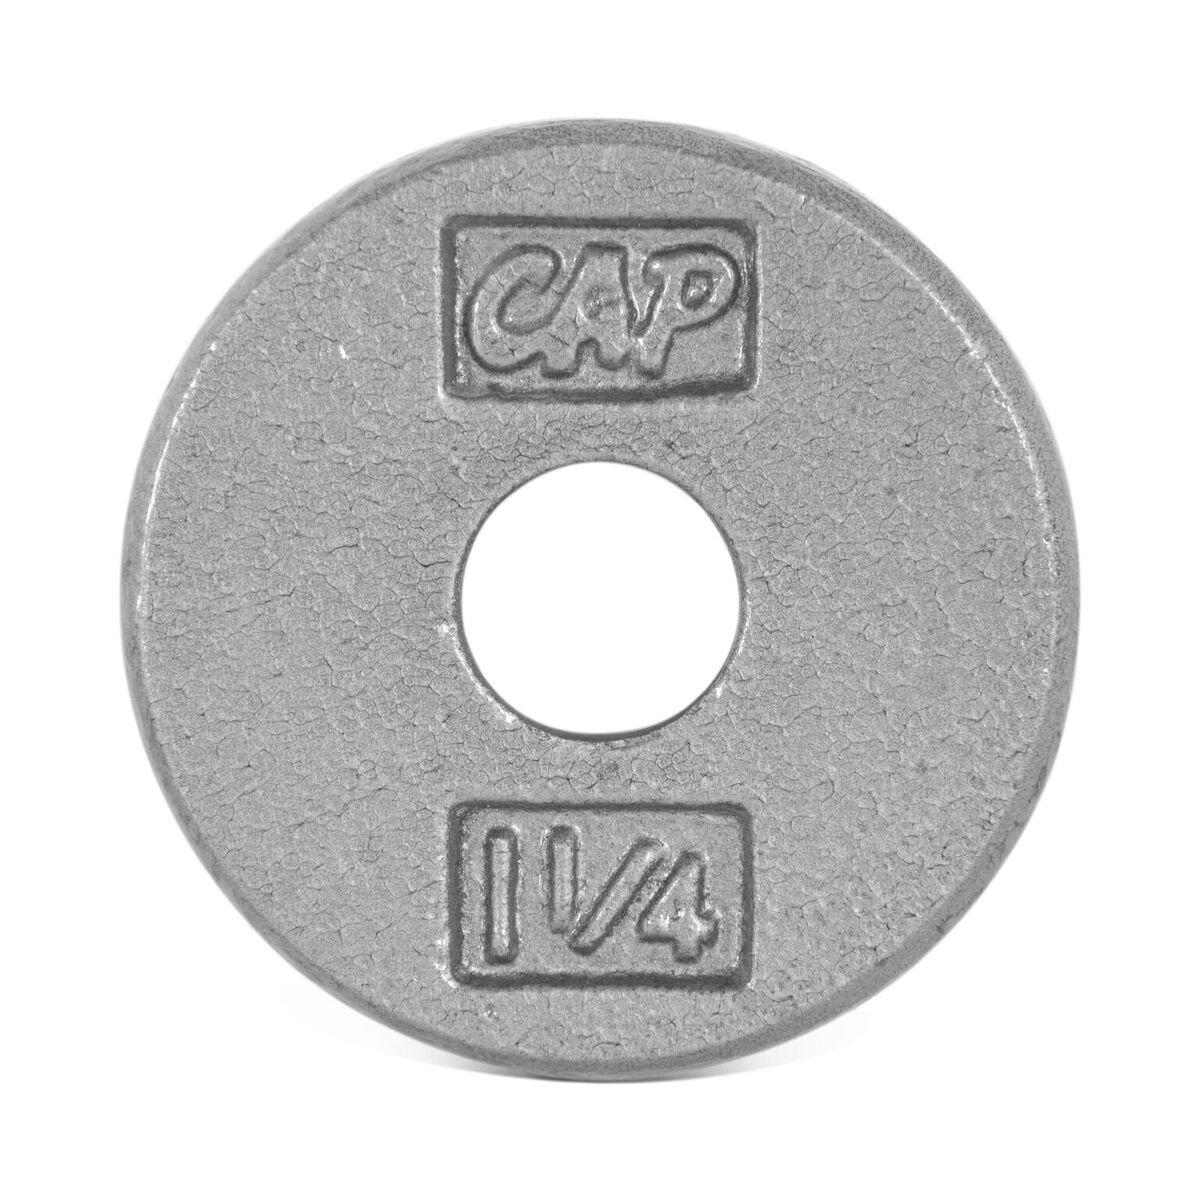 CAP Barbell Cast Iron Standard 1-Inch Weight Plates, Gray, Single, 1.25 Pound